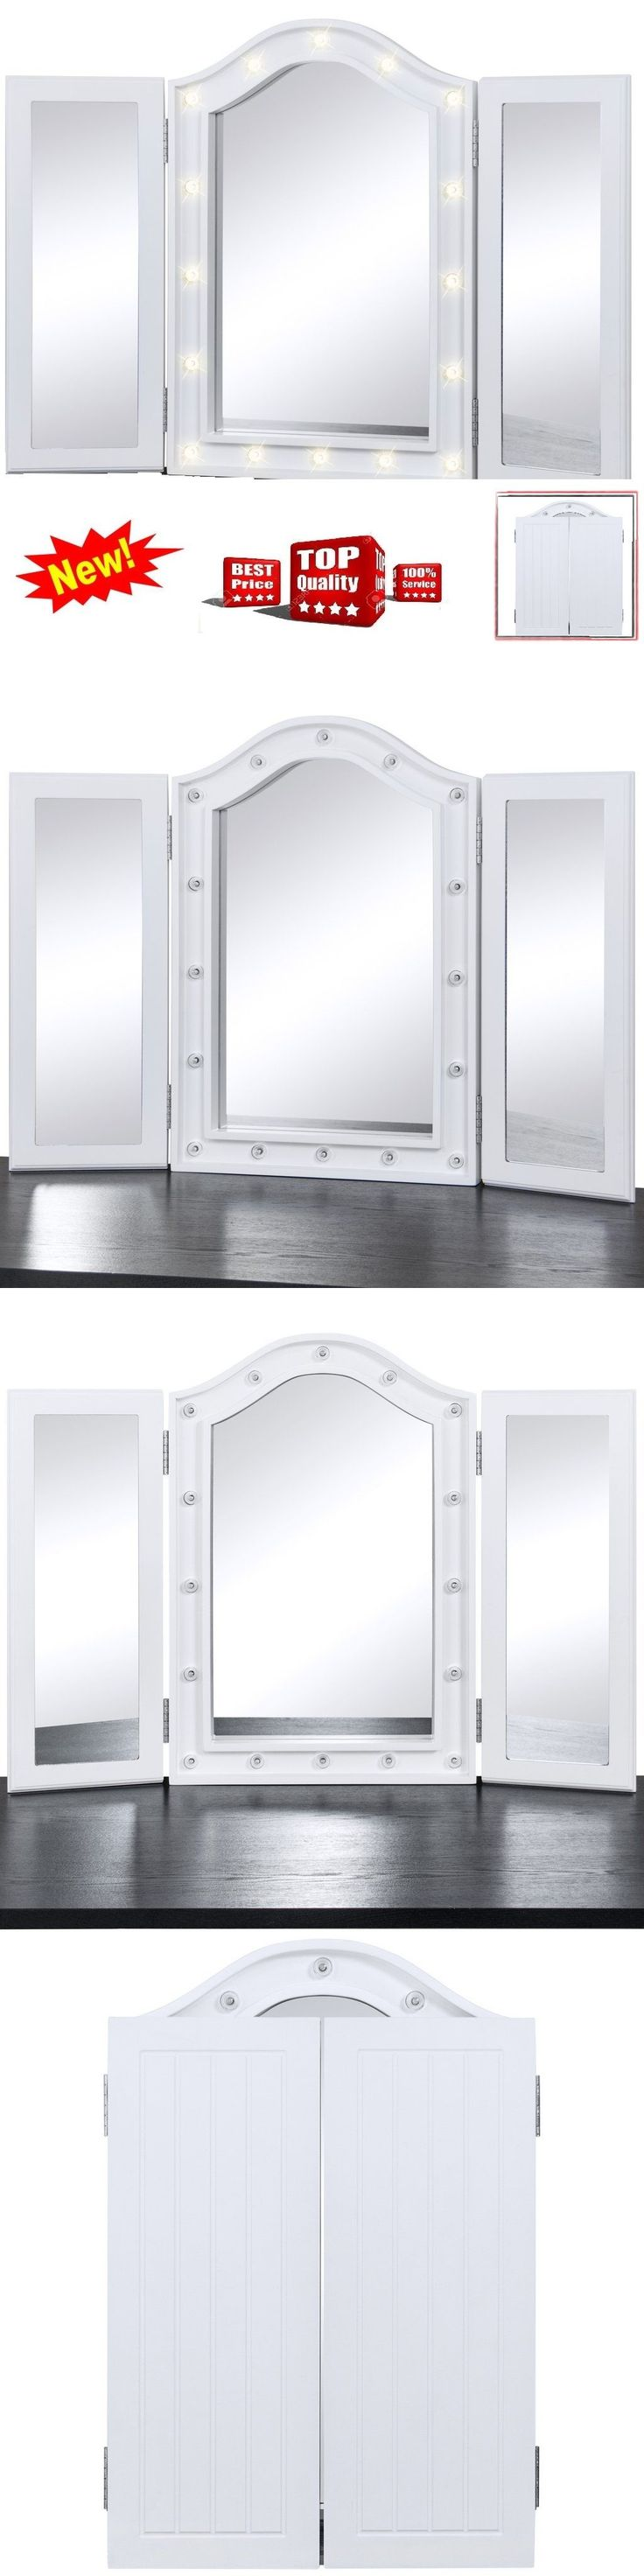 Makeup Mirrors: Led Lighted Tri-Fold Mirror Vanity Tabletop Lights Reflect Hollywood Makeup Fold -> BUY IT NOW ONLY: $63.7 on eBay!